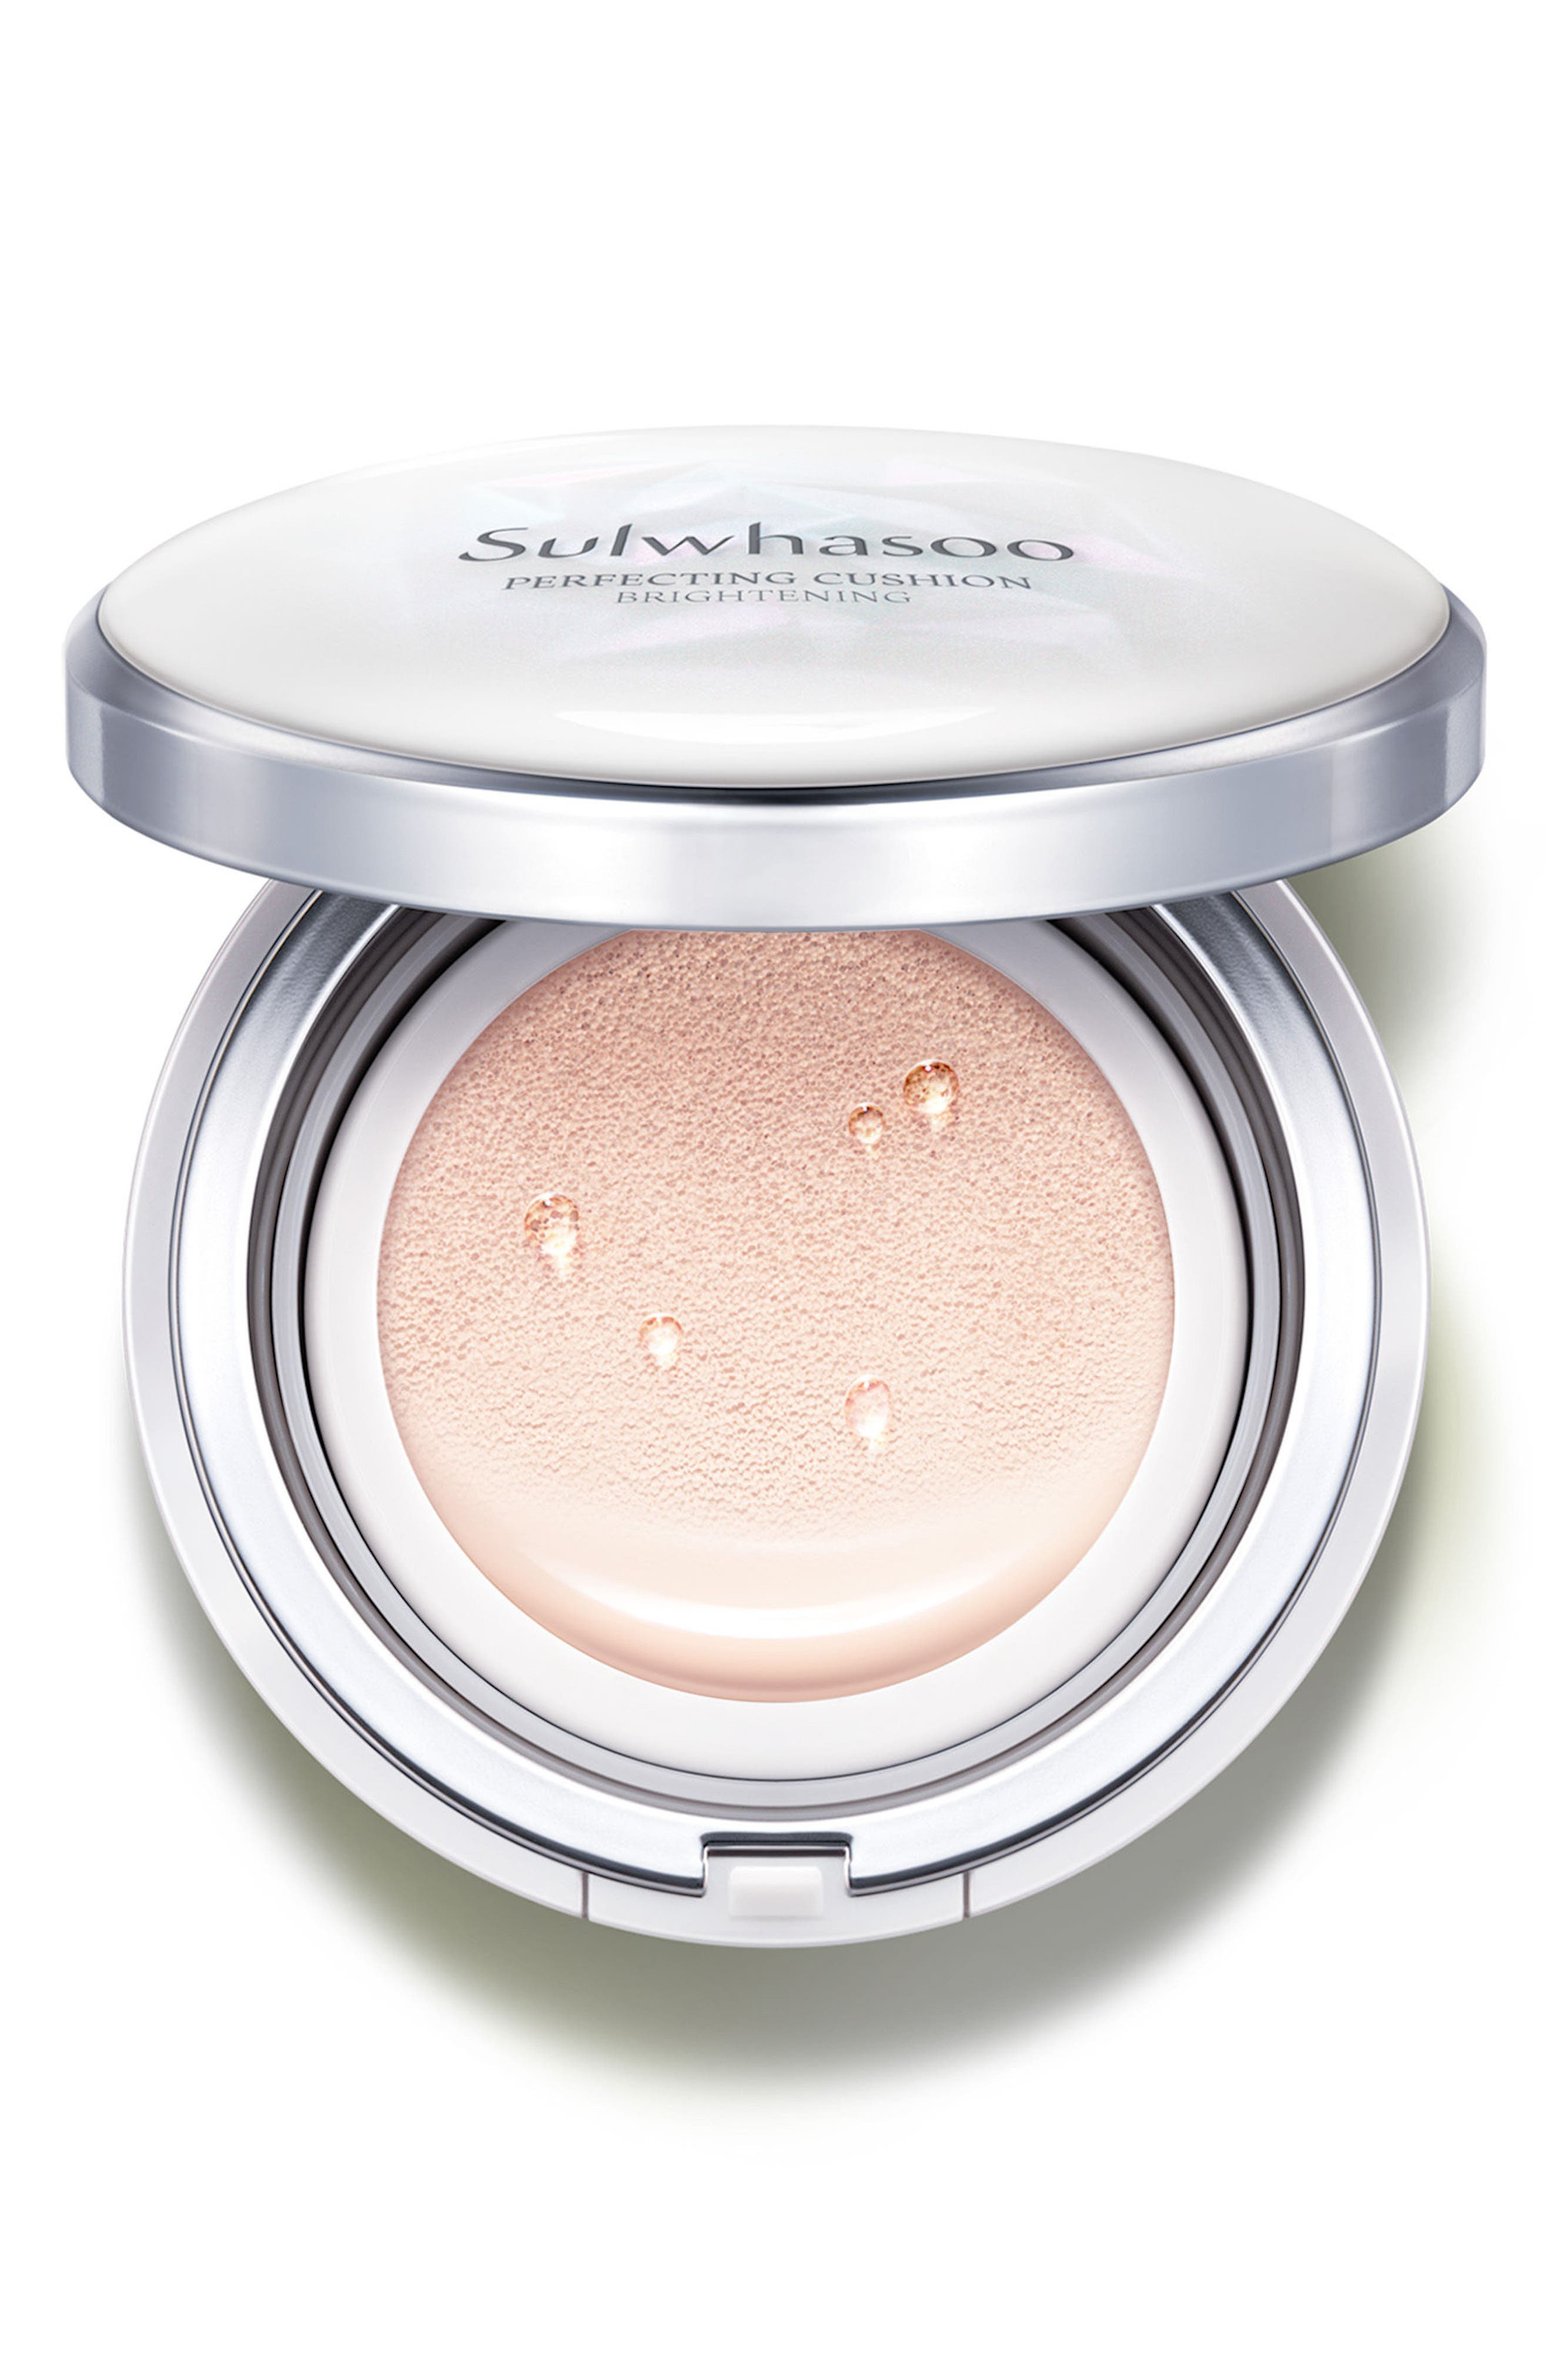 Perfecting Cushion Brightening Foundation,                             Main thumbnail 1, color,                             11 PALE PINK